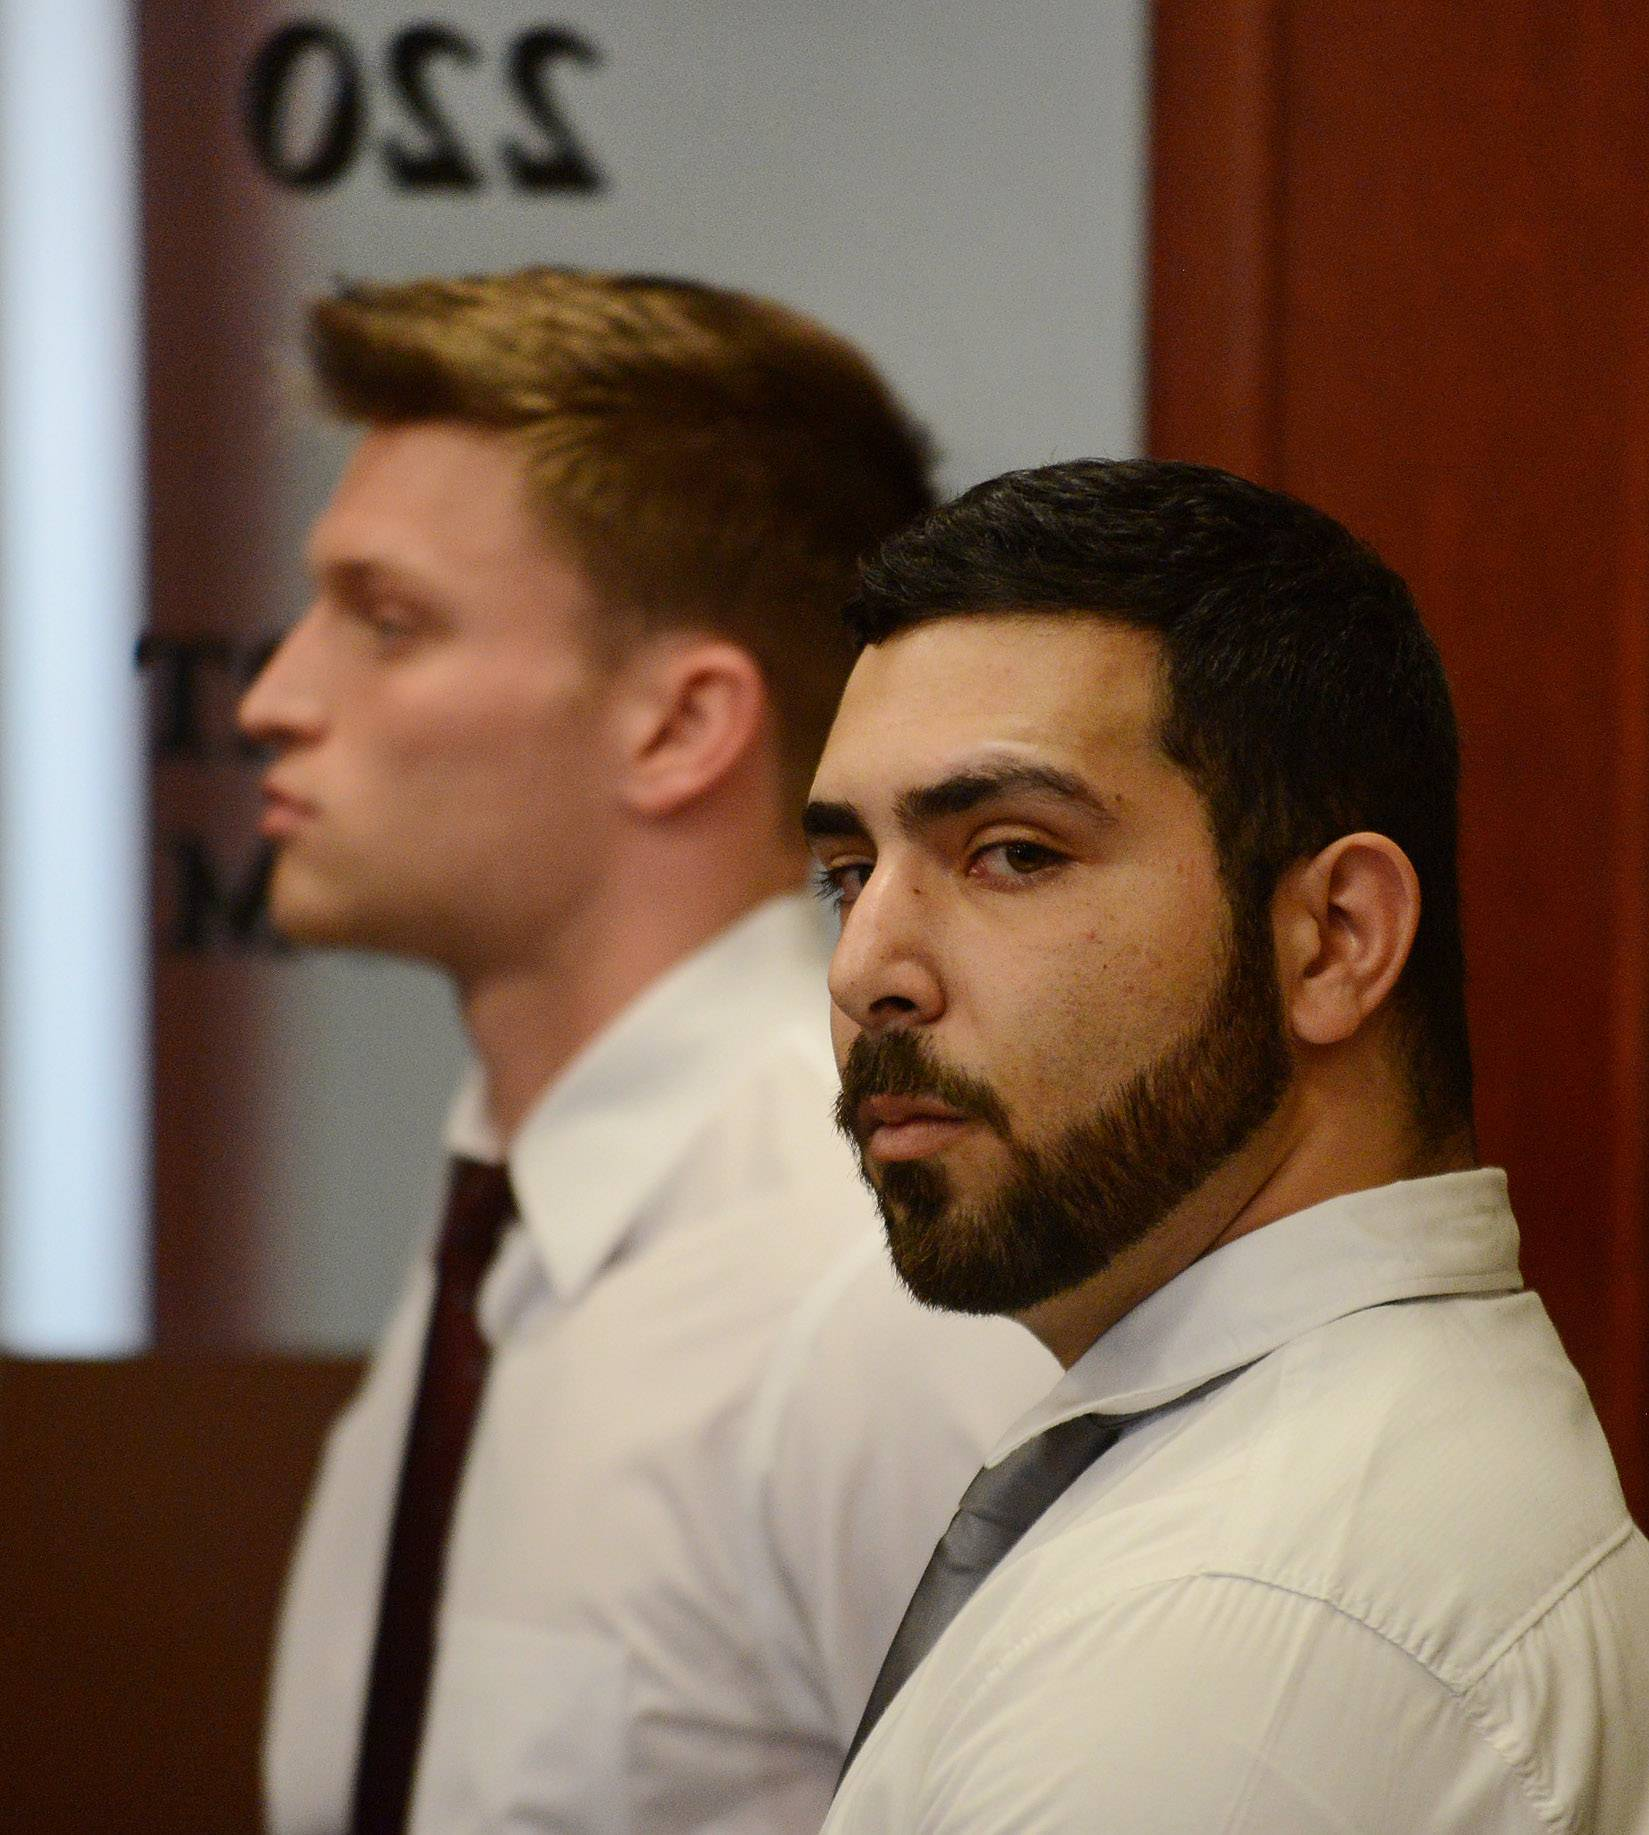 Steven A. Libert of Naperville, left, and Mar Salameh of DeKalb pleaded guilty to reckless conduct misdemeanor charges in the hazing death of Northern Illinois University freshman David Bogenberger of Palatine Friday at the DeKalb County Courthouse in Sycamore.